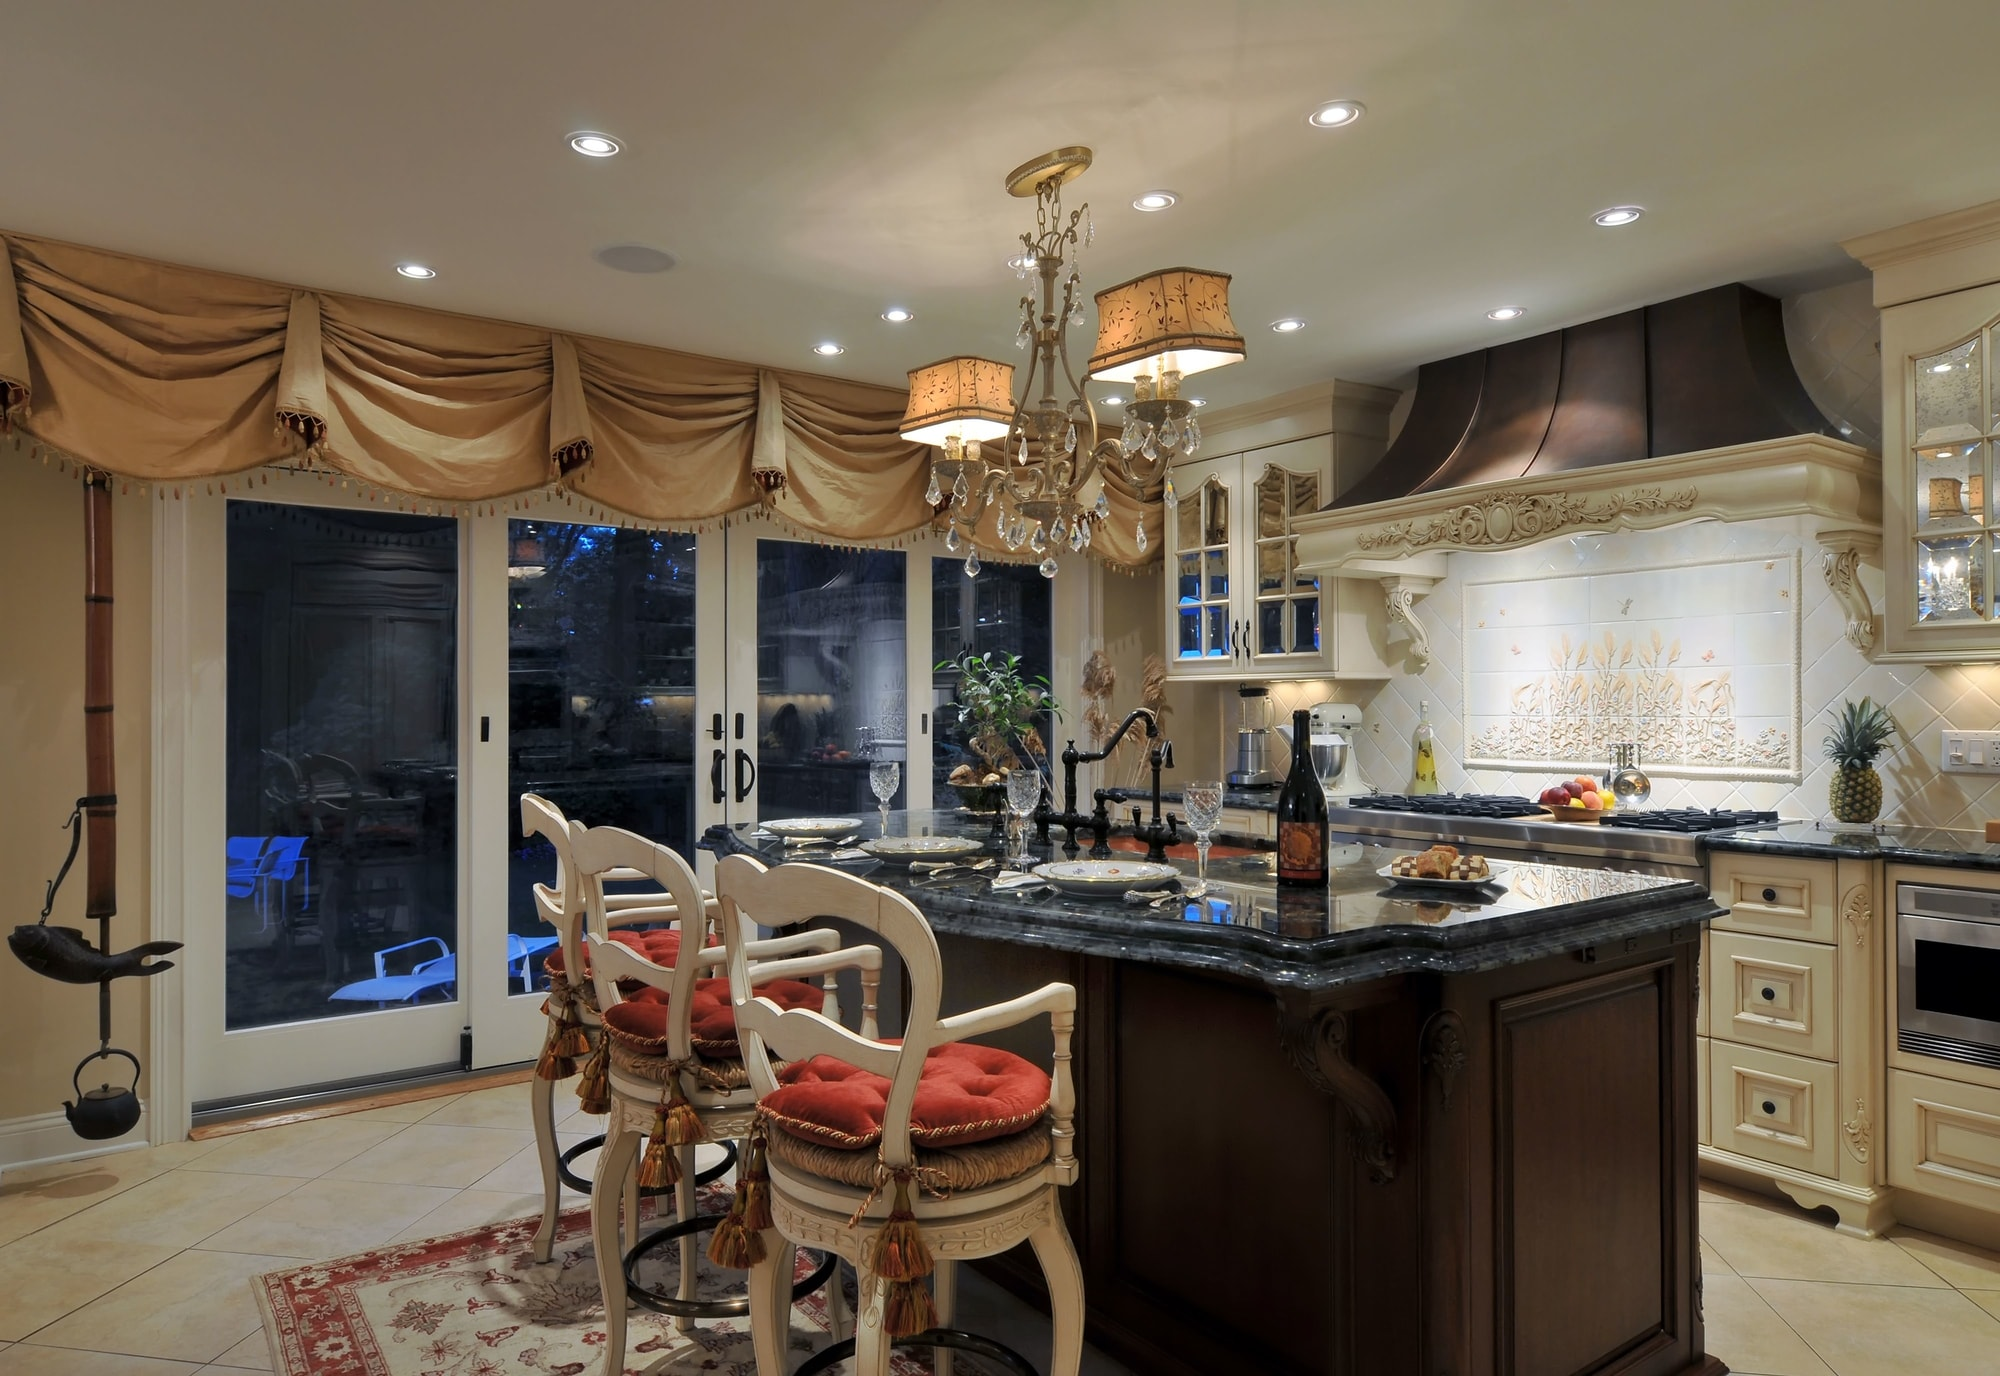 Traditional style kitchen with sliding glass door